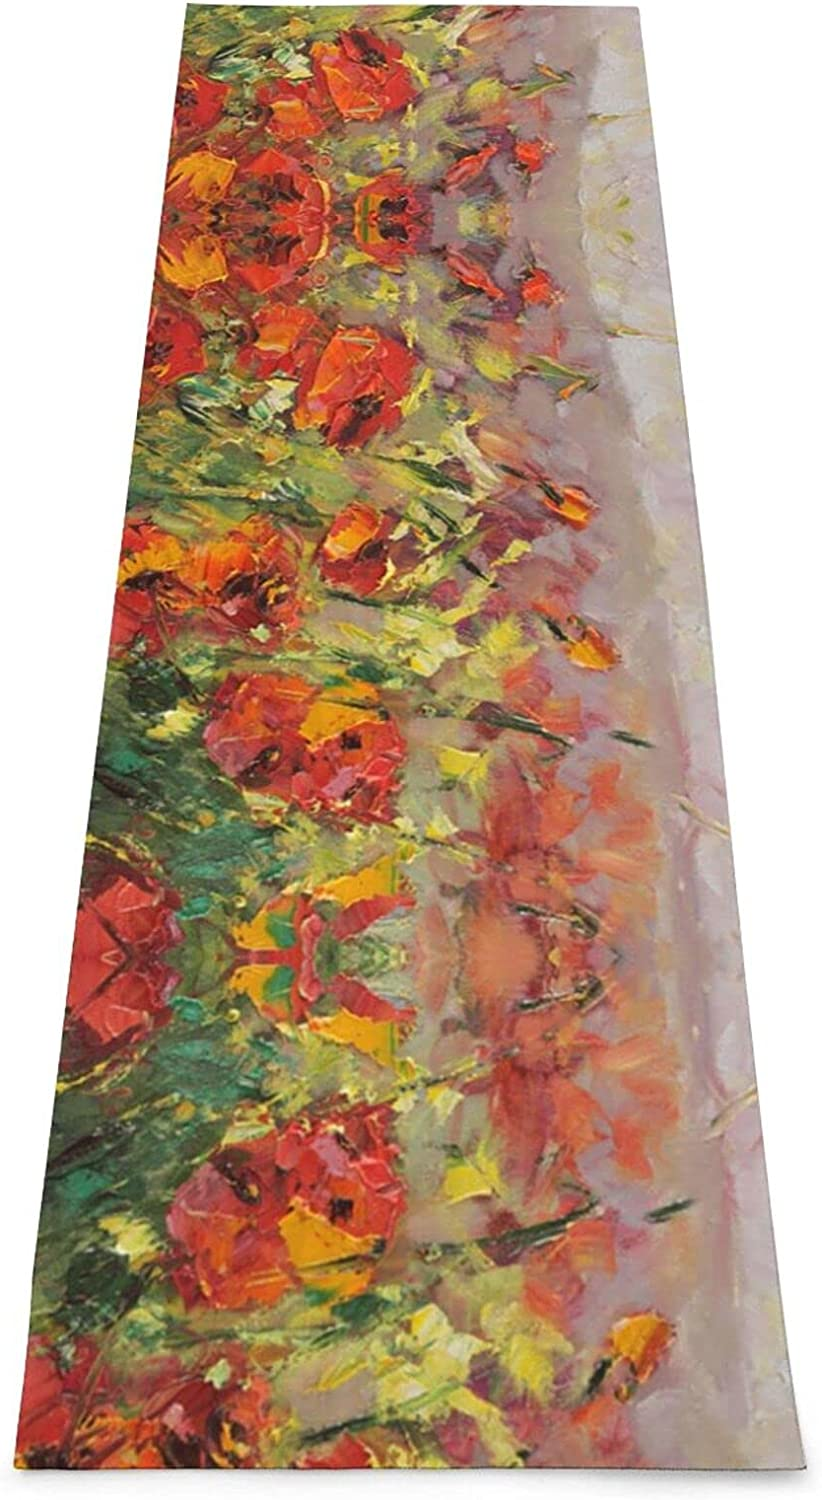 Oil Challenge Direct store the lowest price of Japan Painting Red Flower Print Yoga Extra - Mat 5mm Premium